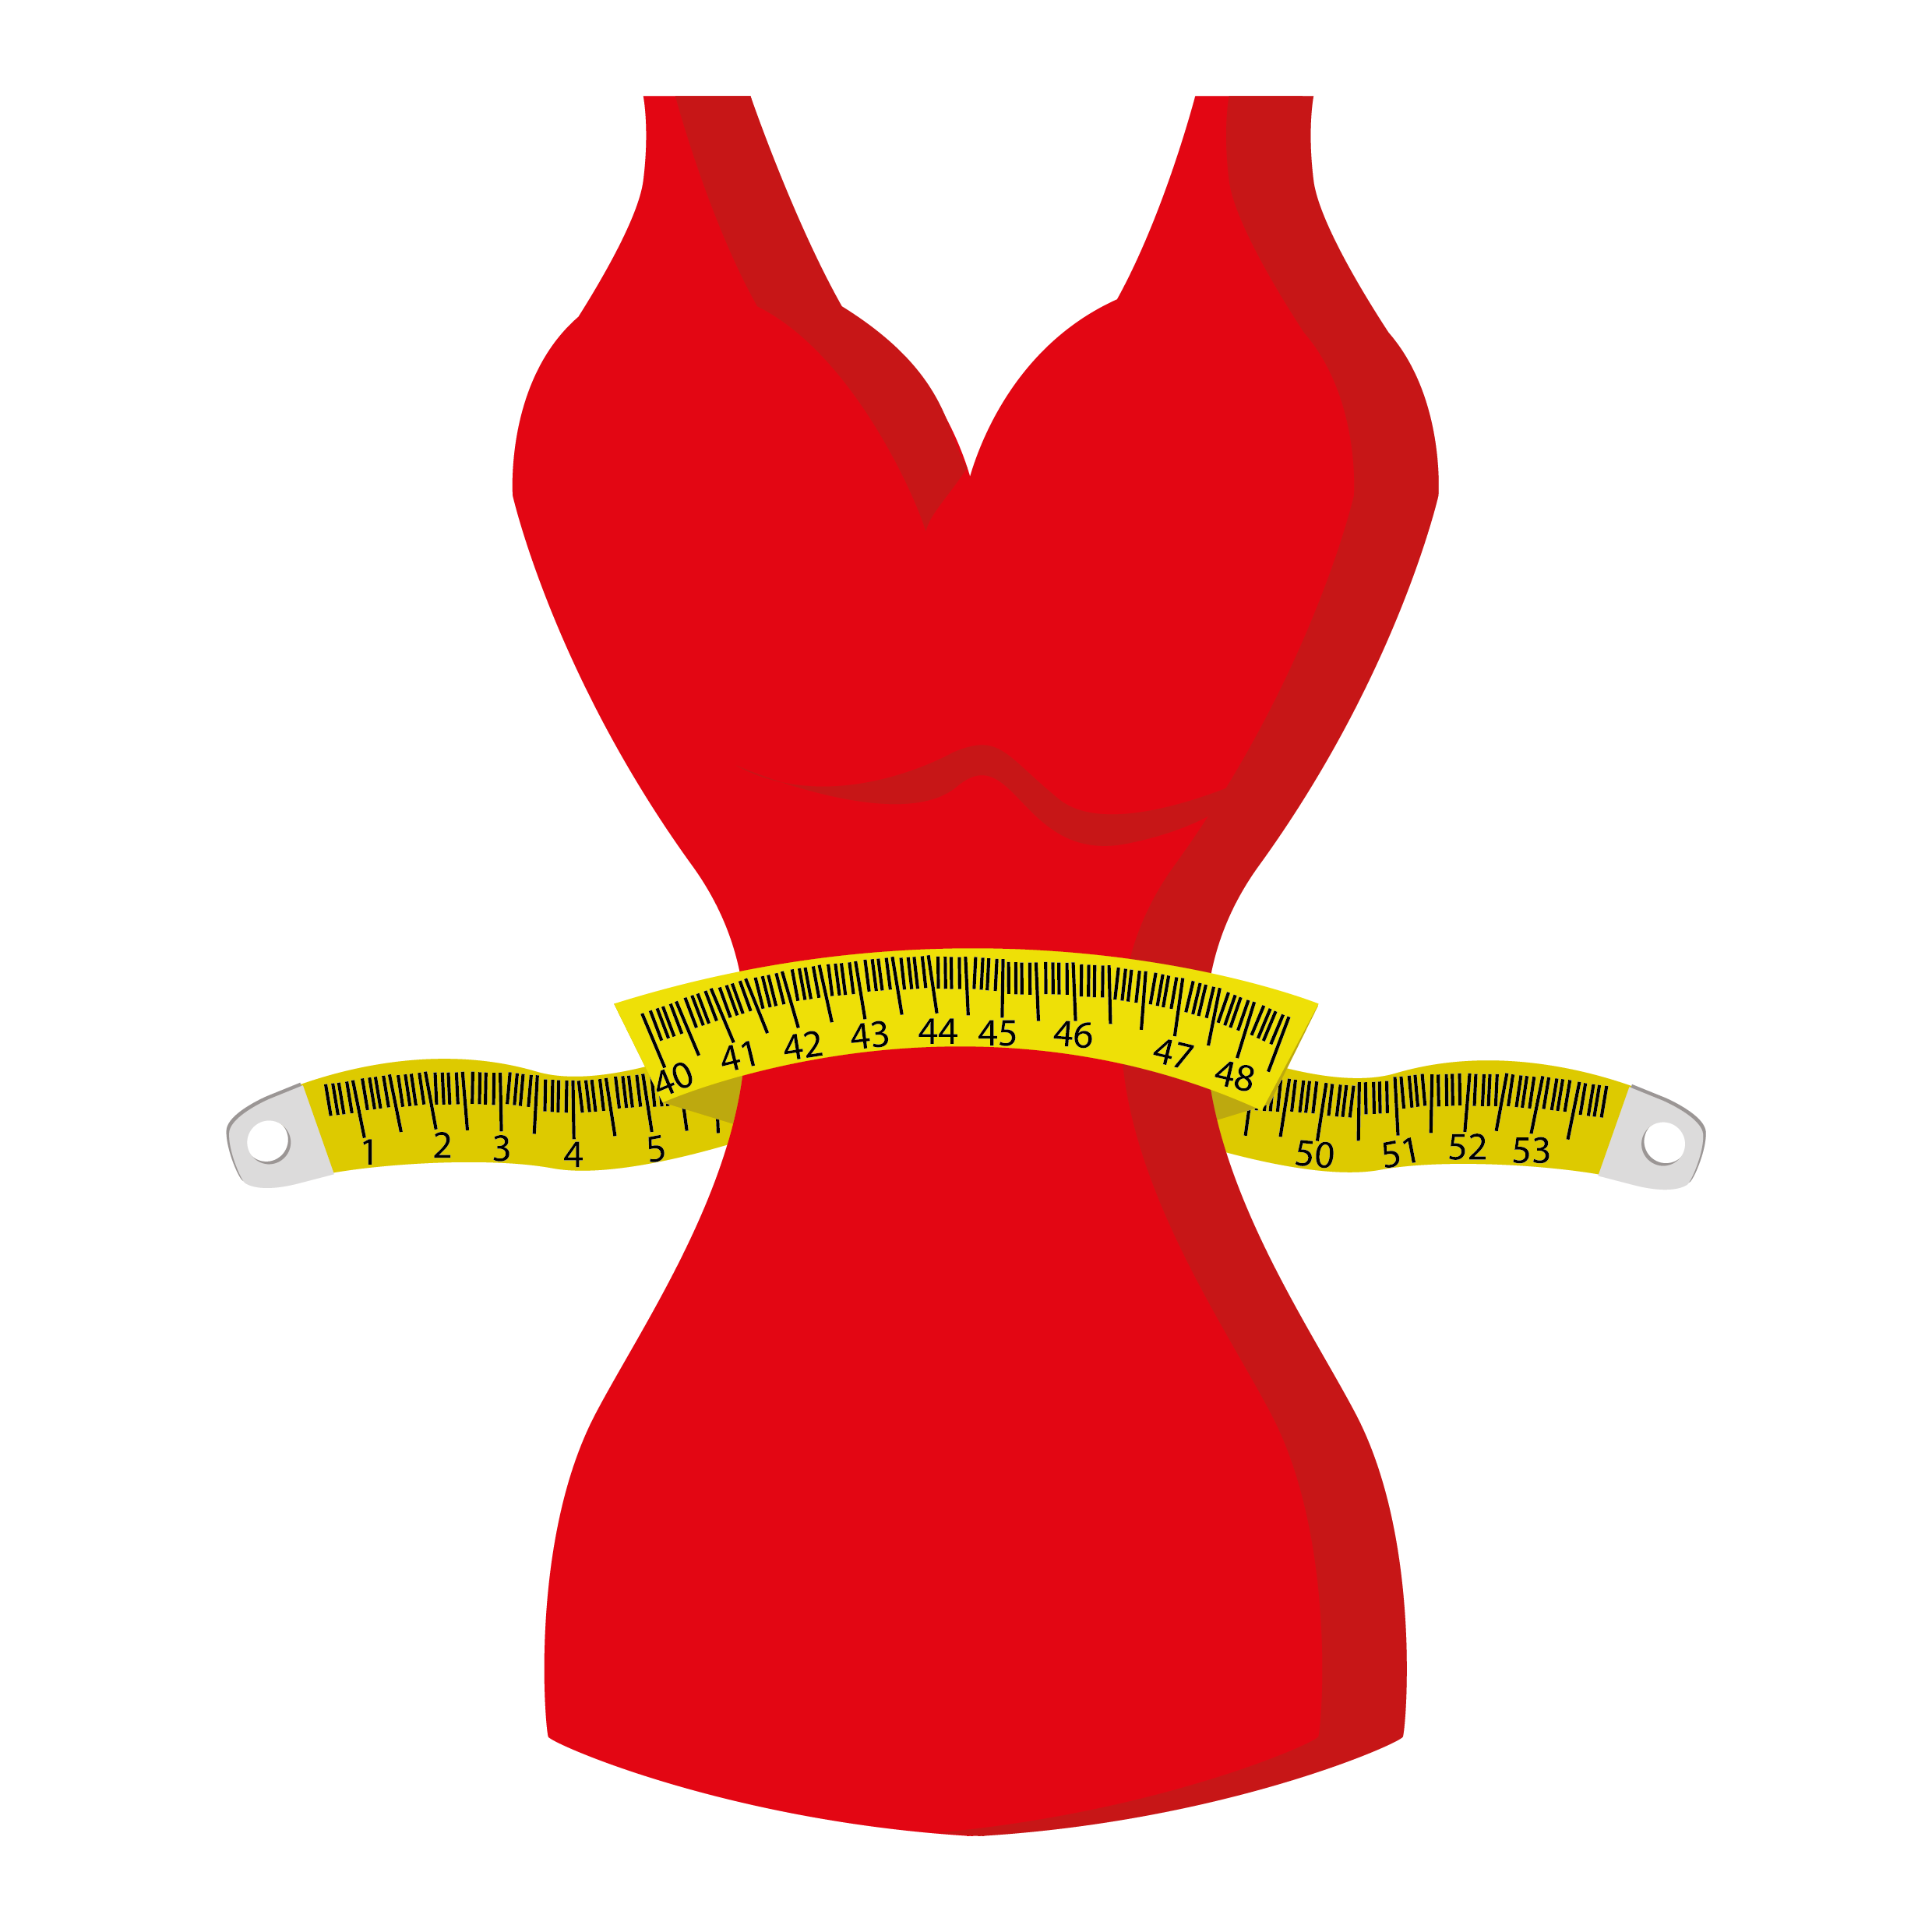 Weight clipart exercise plan. The hourglass body workout